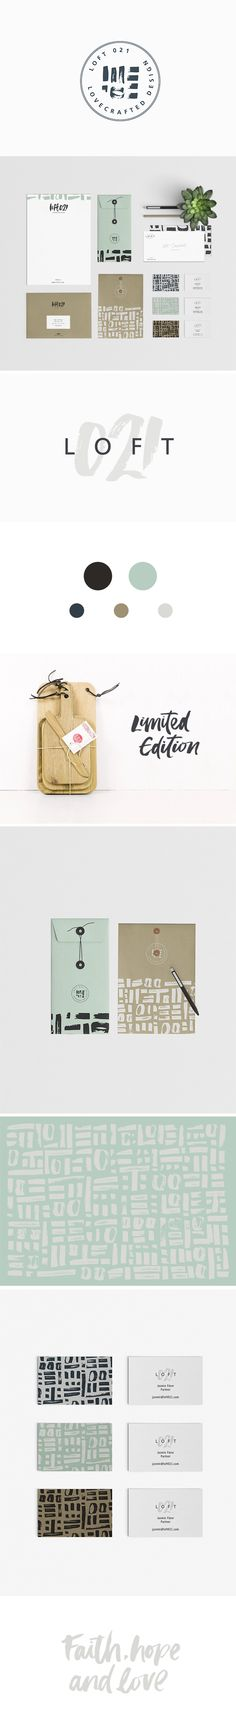 stunning #branding for LOFT021 by Corina Nika #graphicdesign